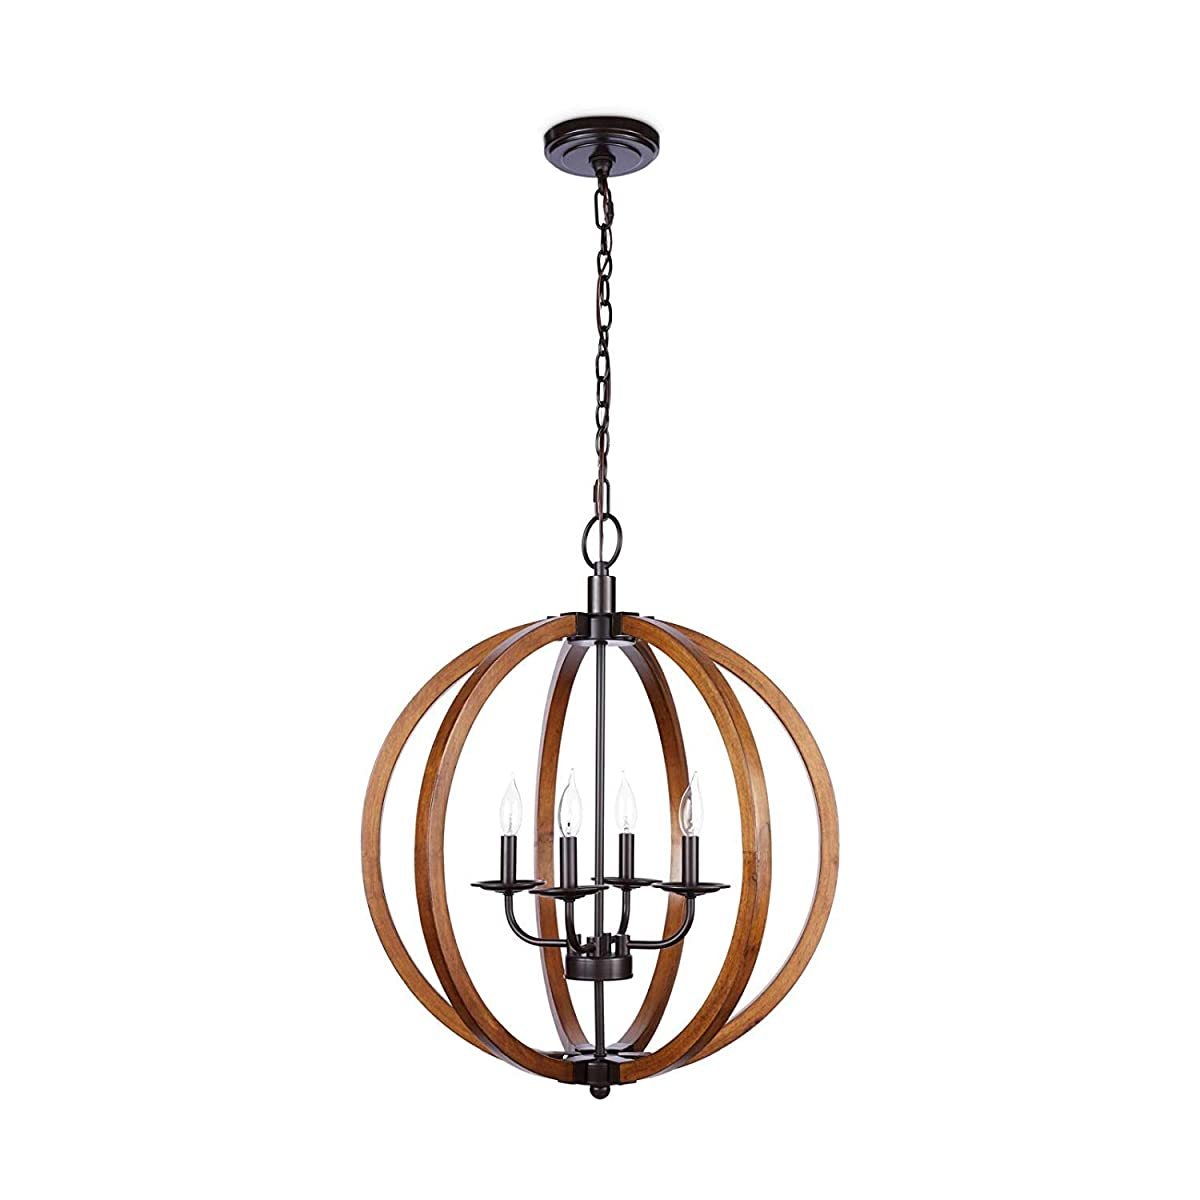 Rustic Orb Chandelier Showcases Distressed Wood In Oil-Rubbed Bronze Finish. Hanging Round Ceiling Pendant Lamp Provides Ample Lighting. Candle Style Globe Light Fixture Creates Modern Farmhouse Feel.